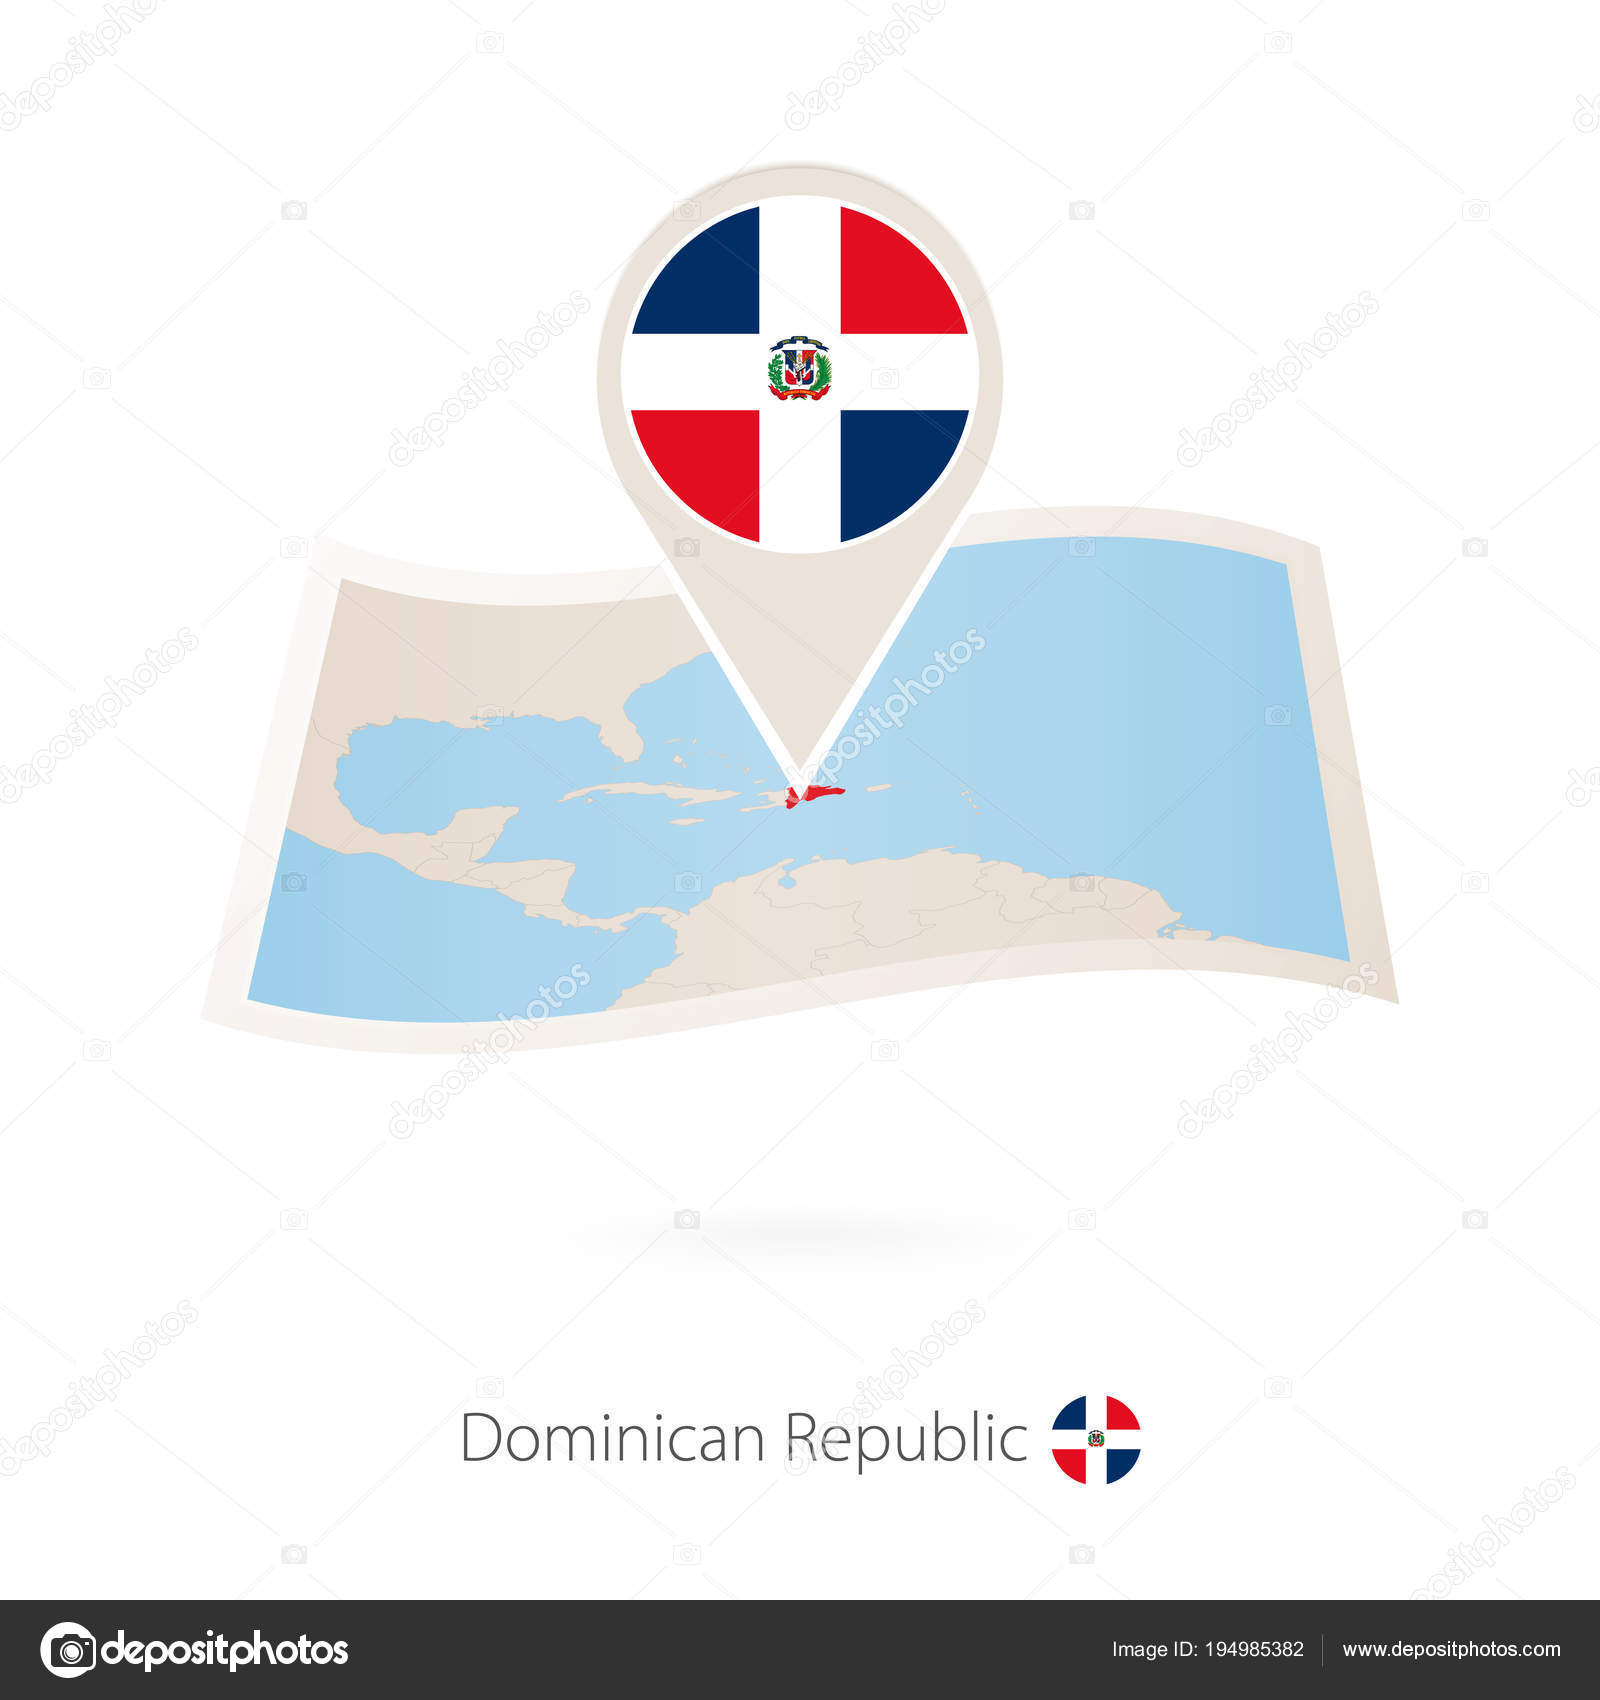 Folded paper map of Dominican Republic with flag pin of Dominican ...